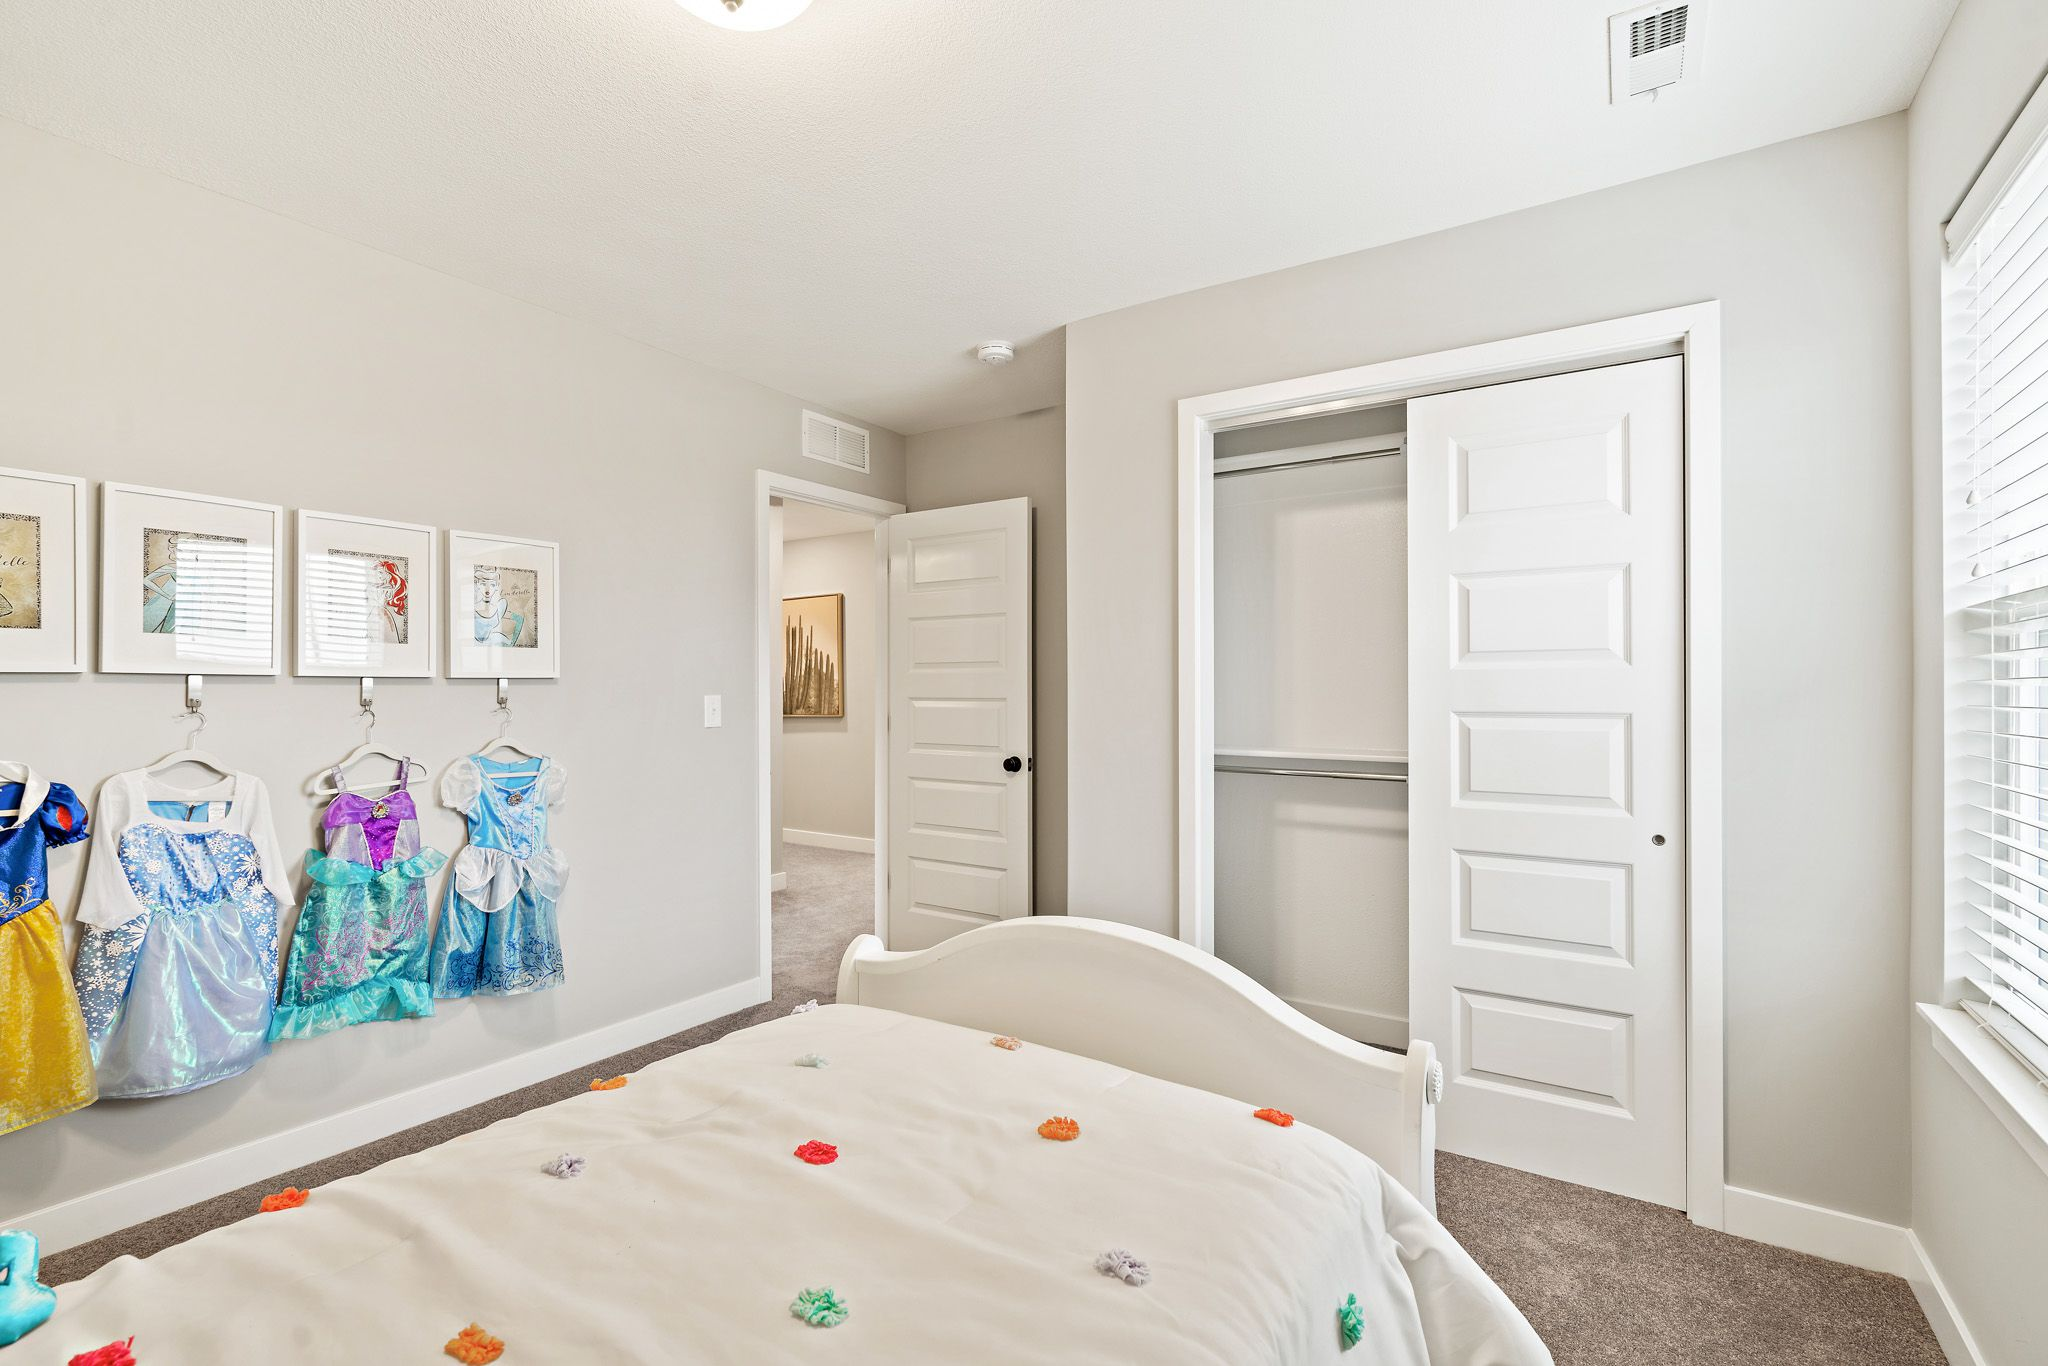 Bedroom featured in the honeydew By clover & hive in Des Moines, IA